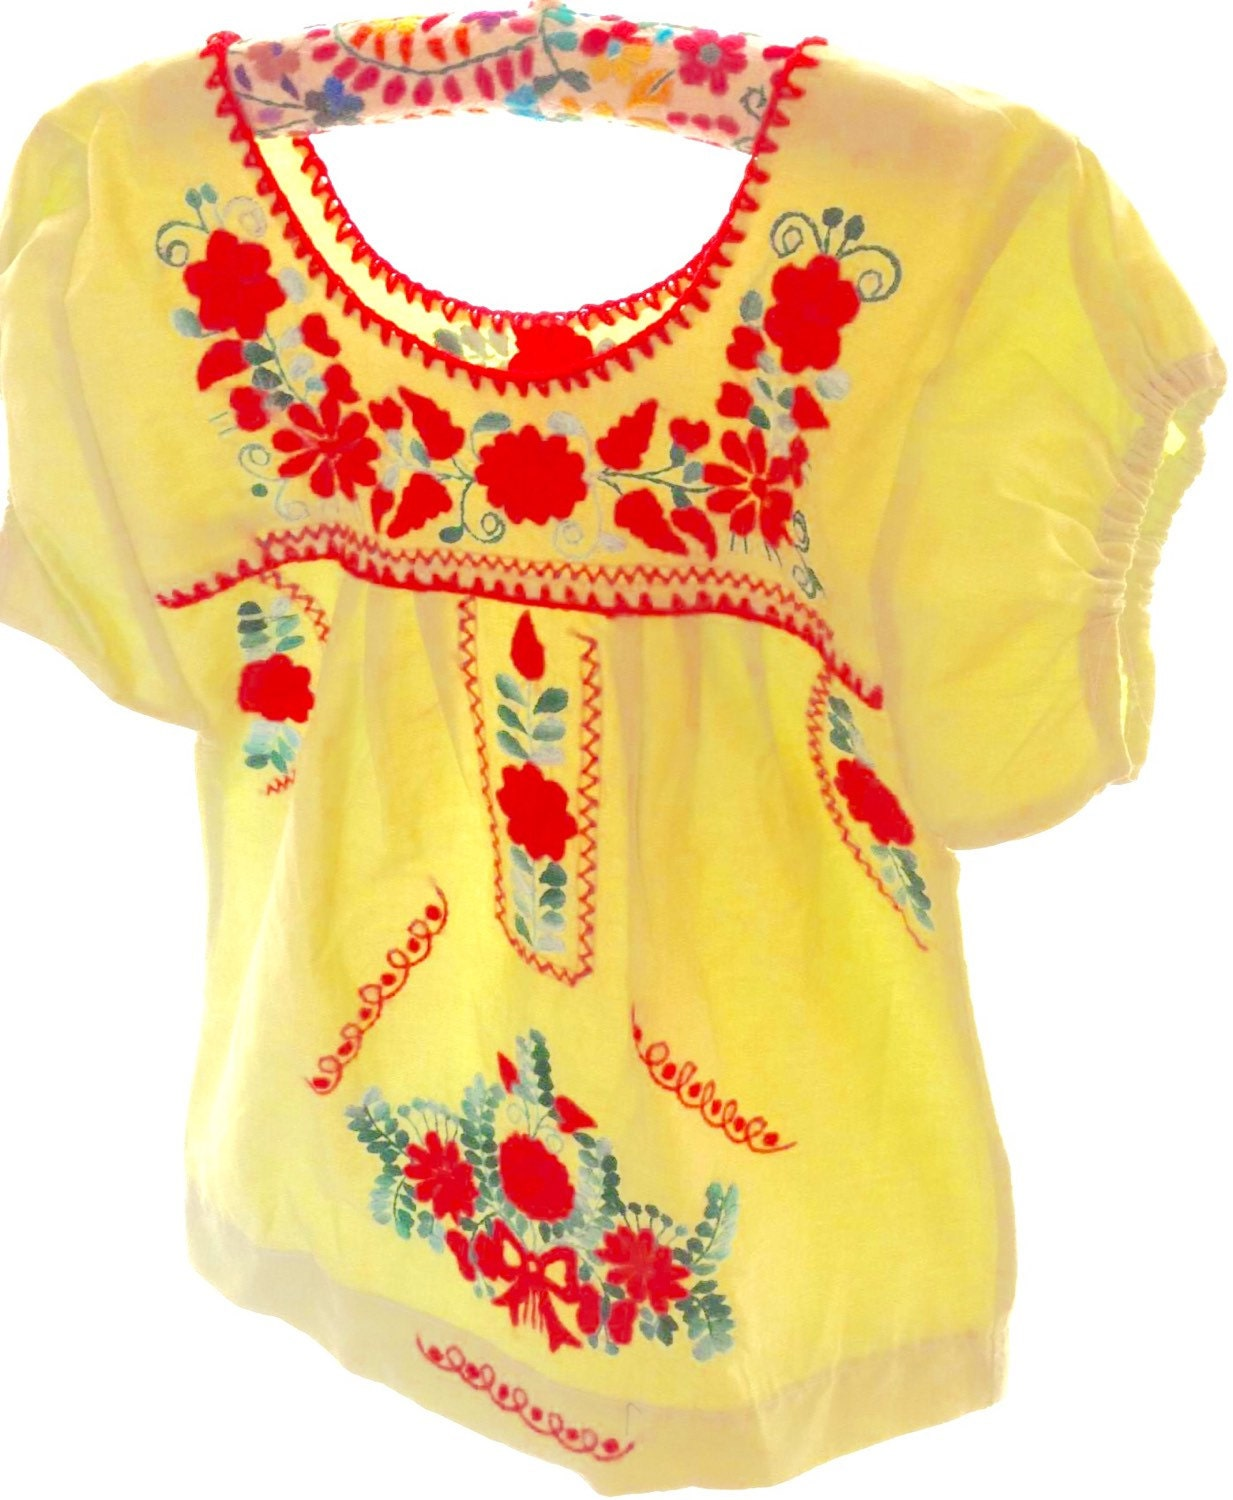 Mexican dress baby embroidered tunic by aidacoronado on etsy